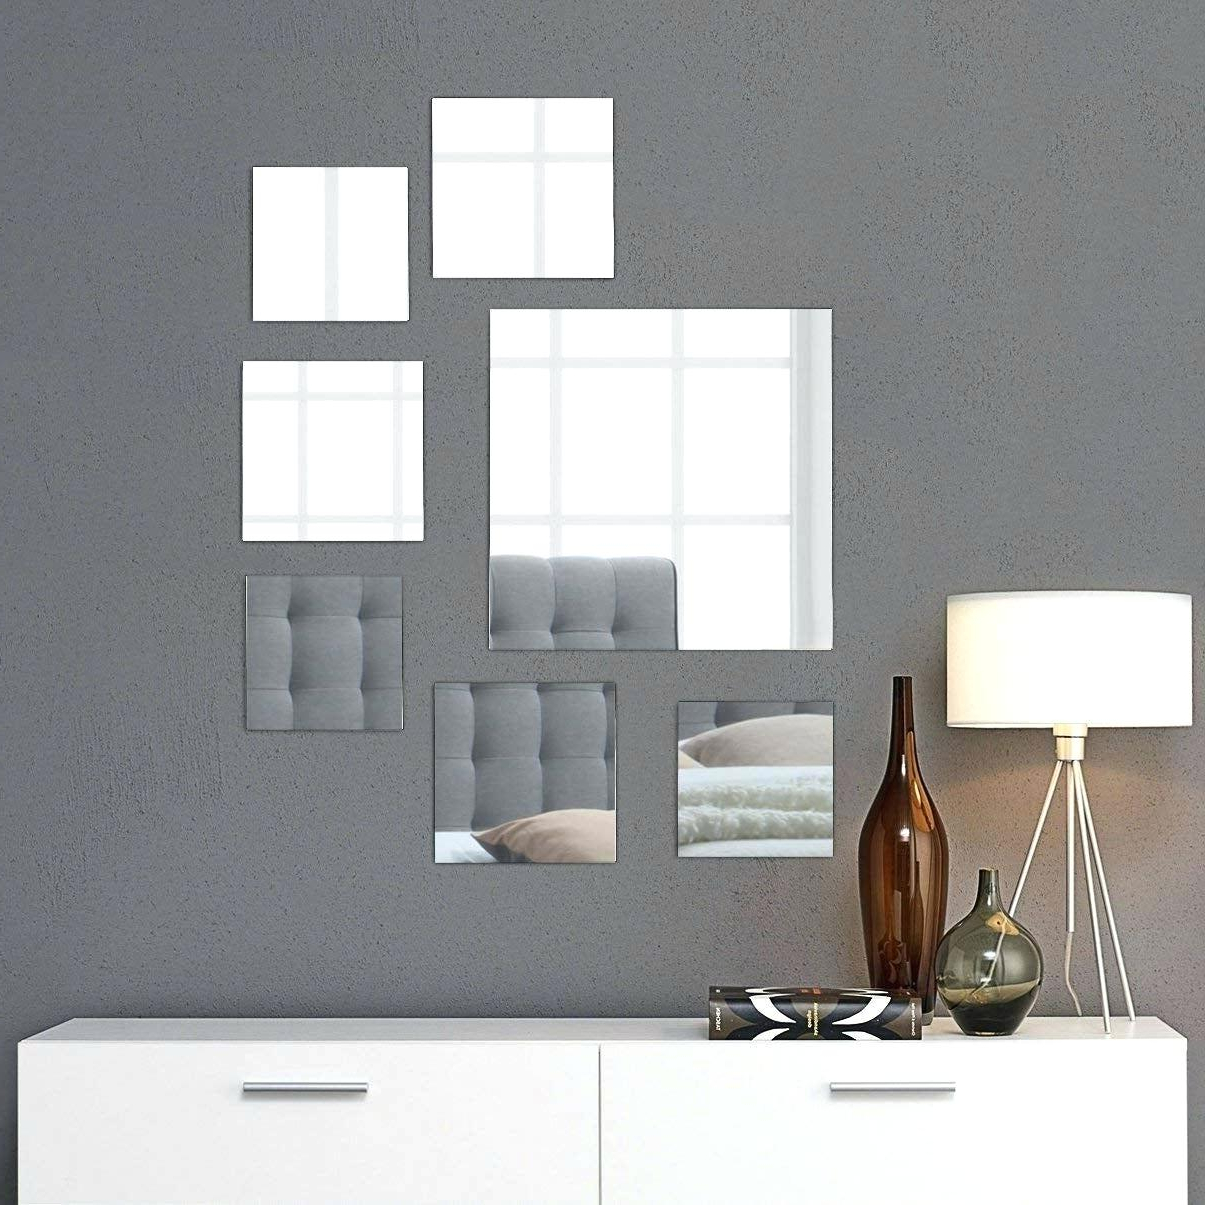 Favorite Decorative Wall Mirror Sets Throughout Wall Mirror Sets – Gabriellejustus (View 8 of 20)